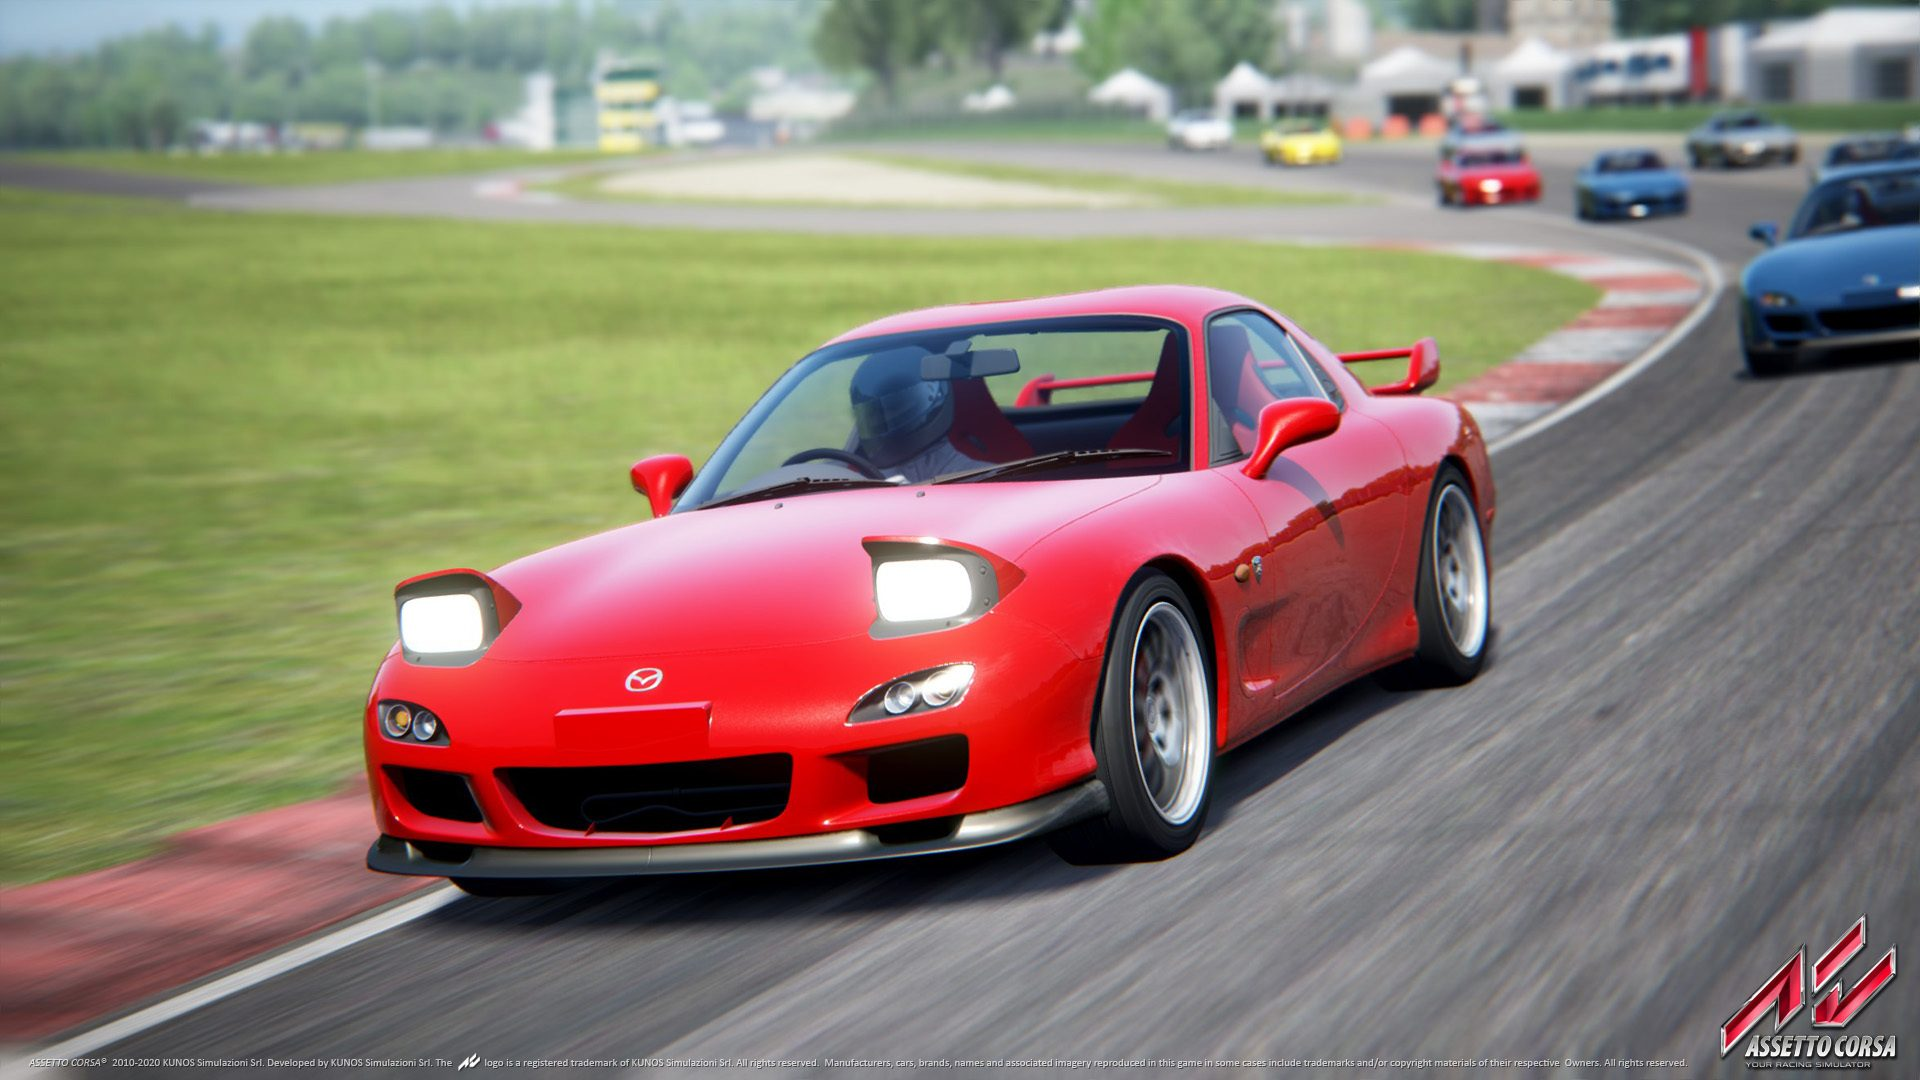 assetto corsa 39 s japanese pack comes to consoles xbox one. Black Bedroom Furniture Sets. Home Design Ideas